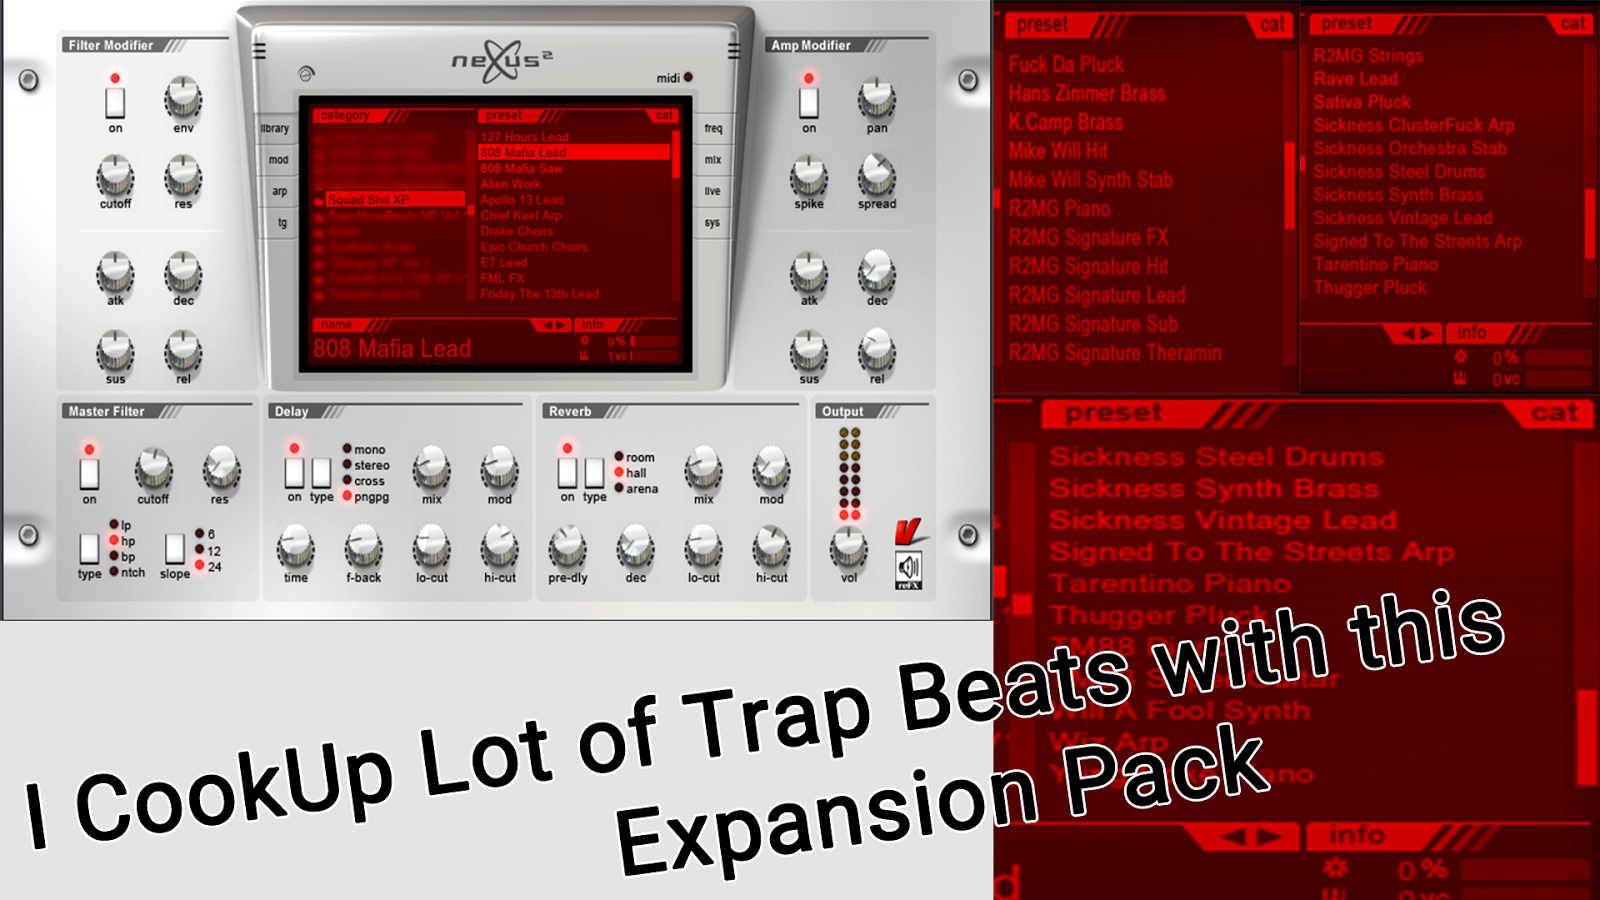 nexus 2 trap expansion presets download